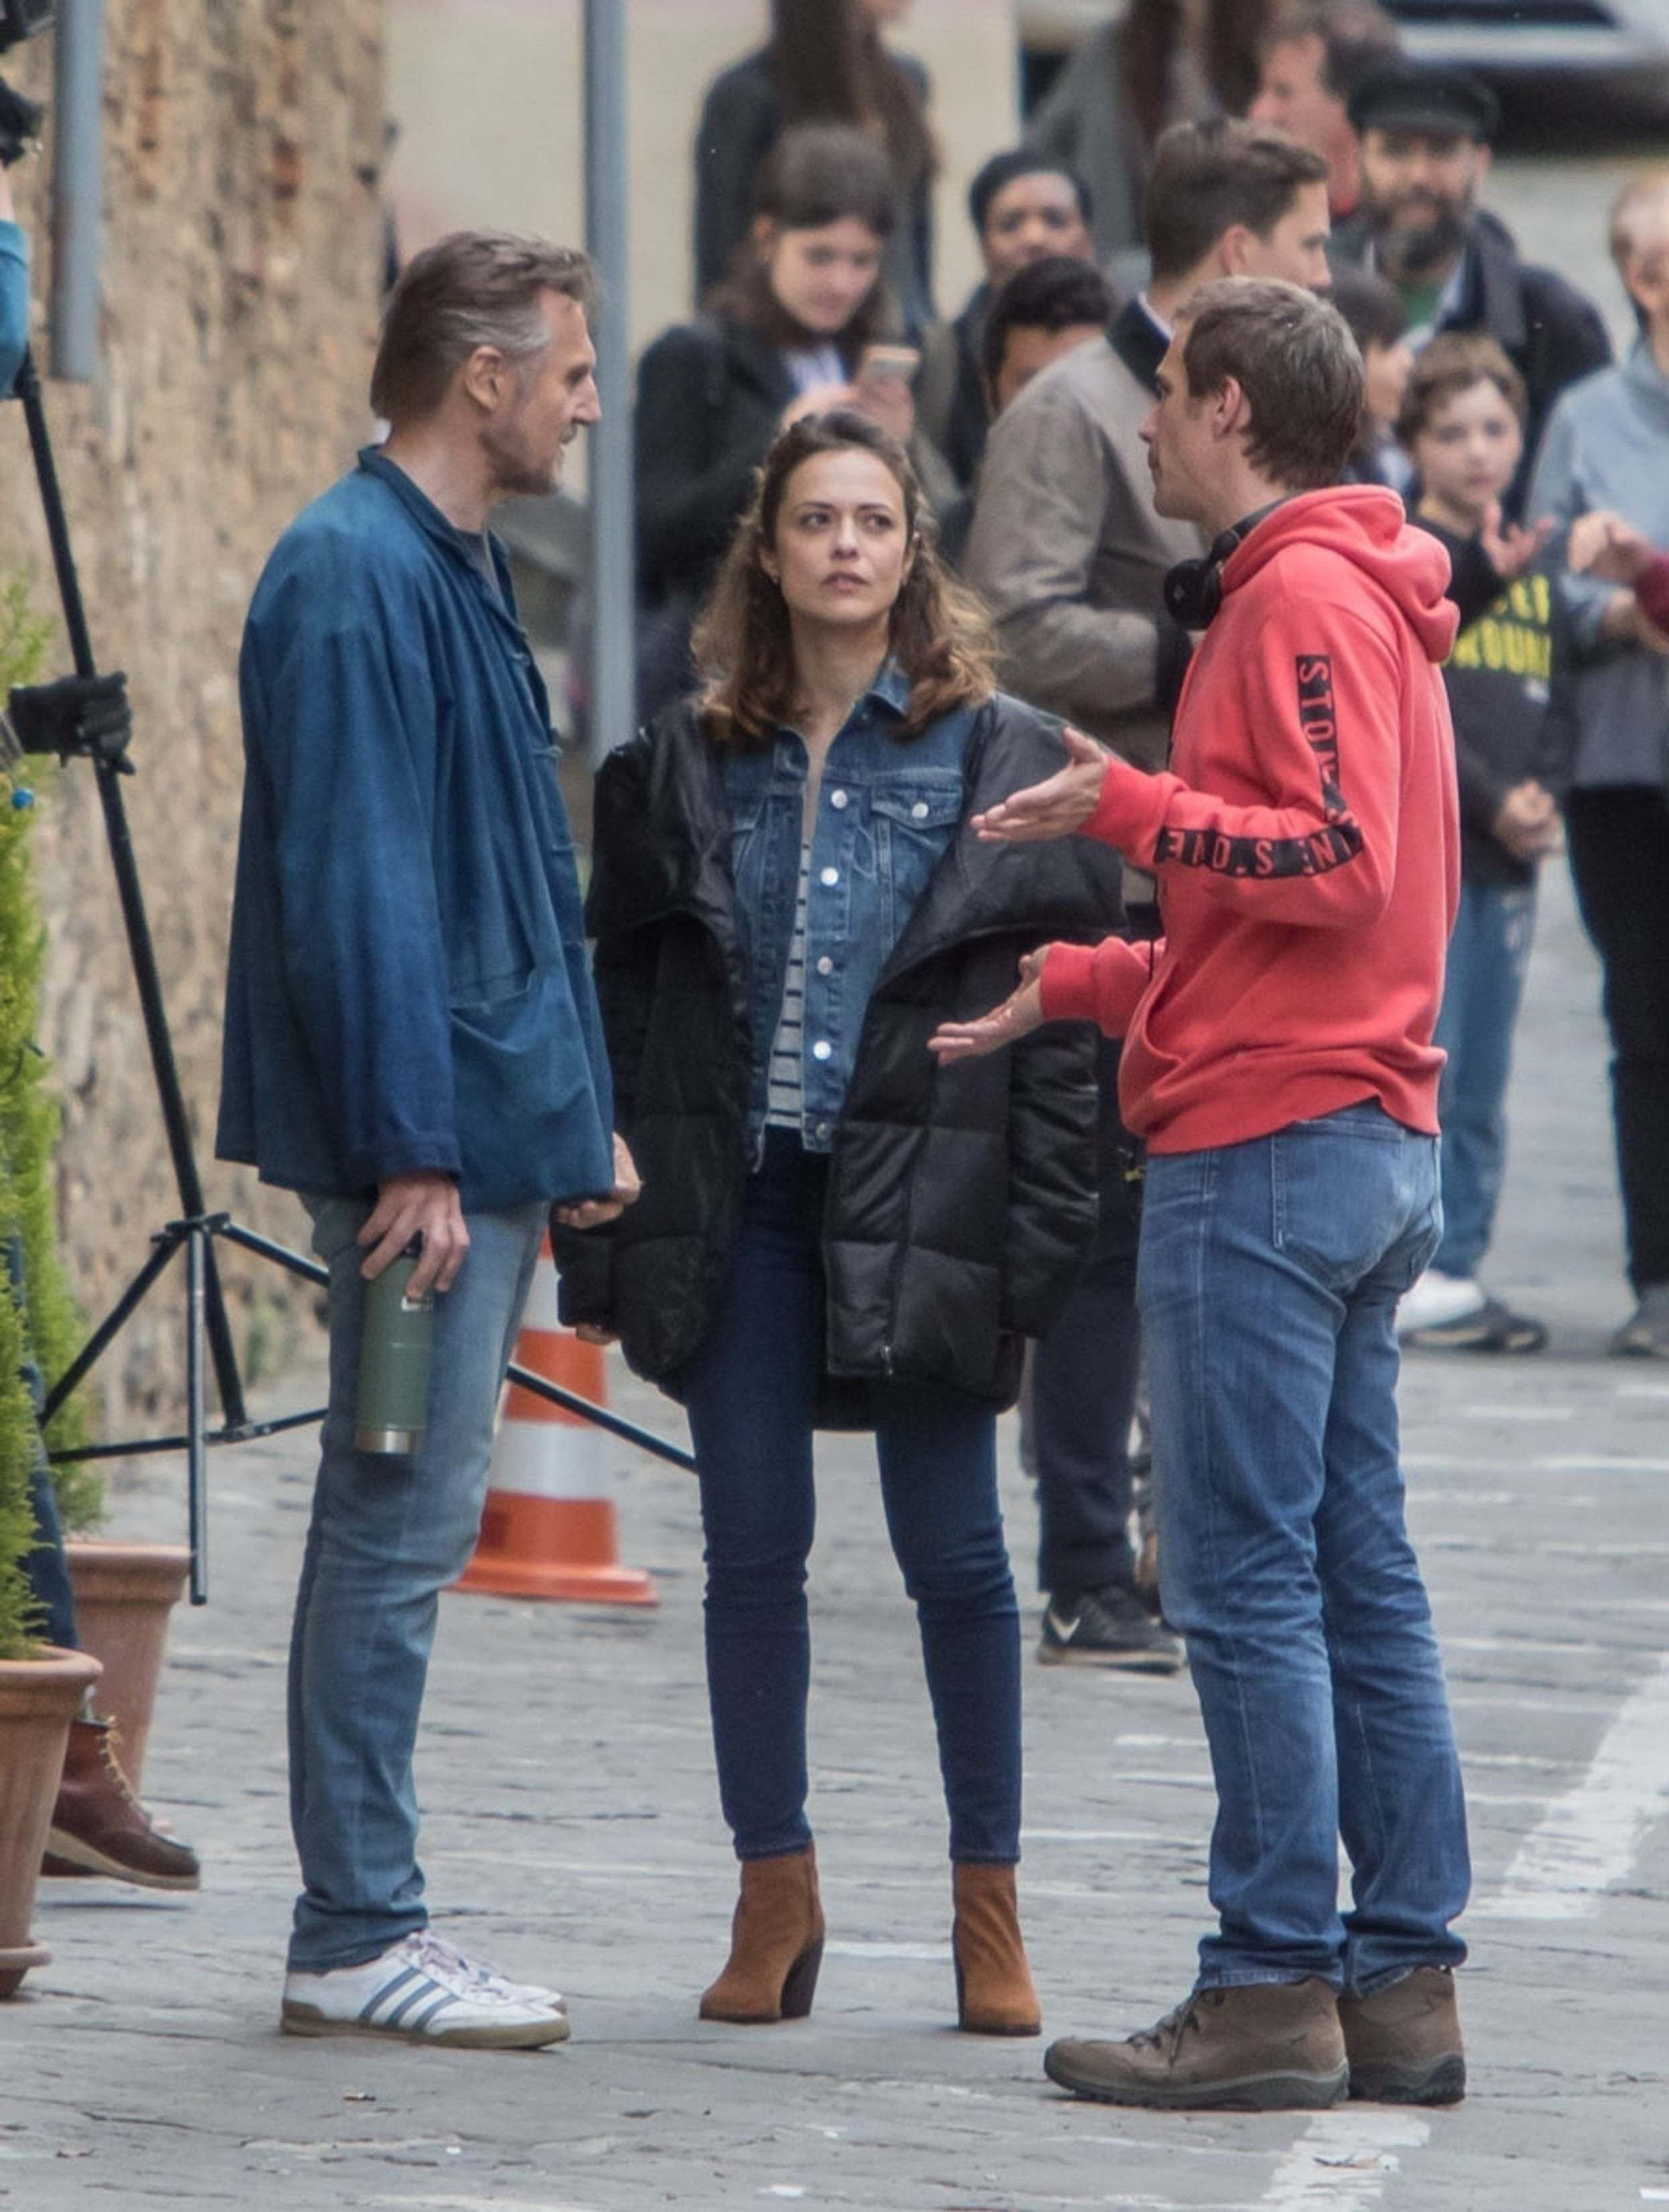 13 May 2019: Hollywood Pipeline - James D'Arcy directing ...